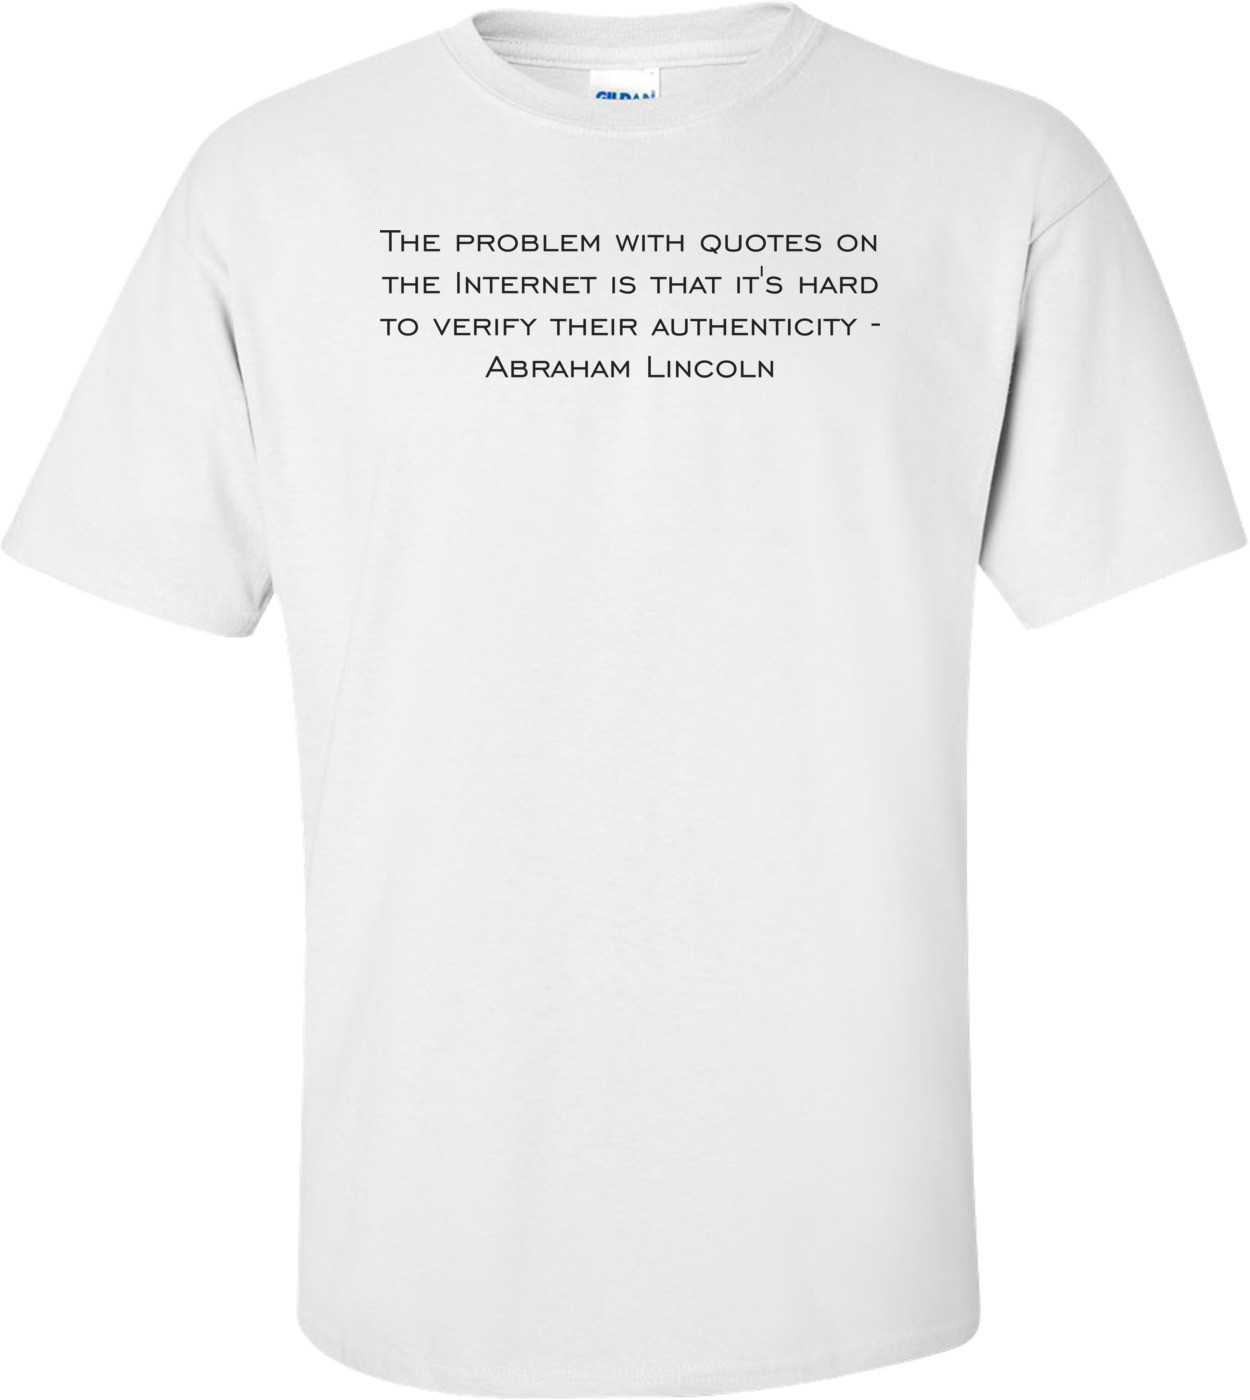 The problem with quotes on the Internet is that it's hard to verify their authenticity - Abraham Lincoln Shirt